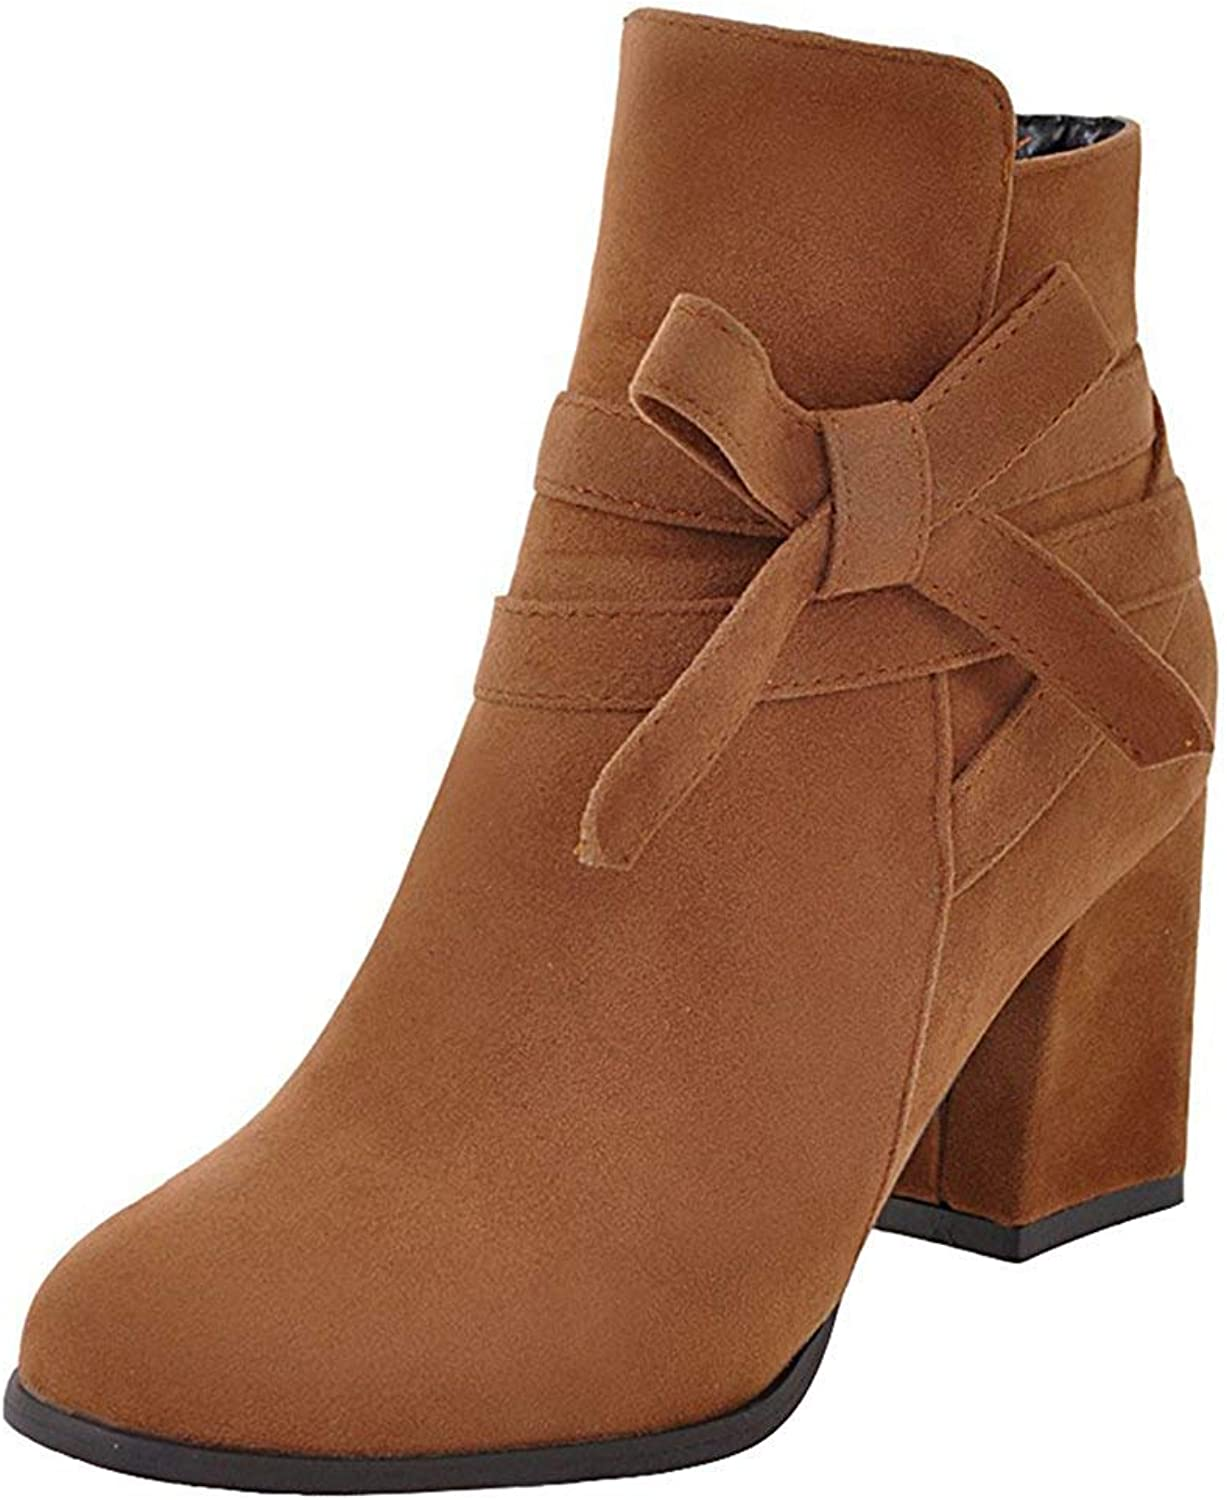 Gcanwea Women's Sweet Faux Suede Bowknot Strap Side Zipper Ankle Booties Round Toe Chunky High Heel Short Boots No Grinding Feet Dress Skinny Pure color Rubber Sole Beige 5.5 M US Short Boots